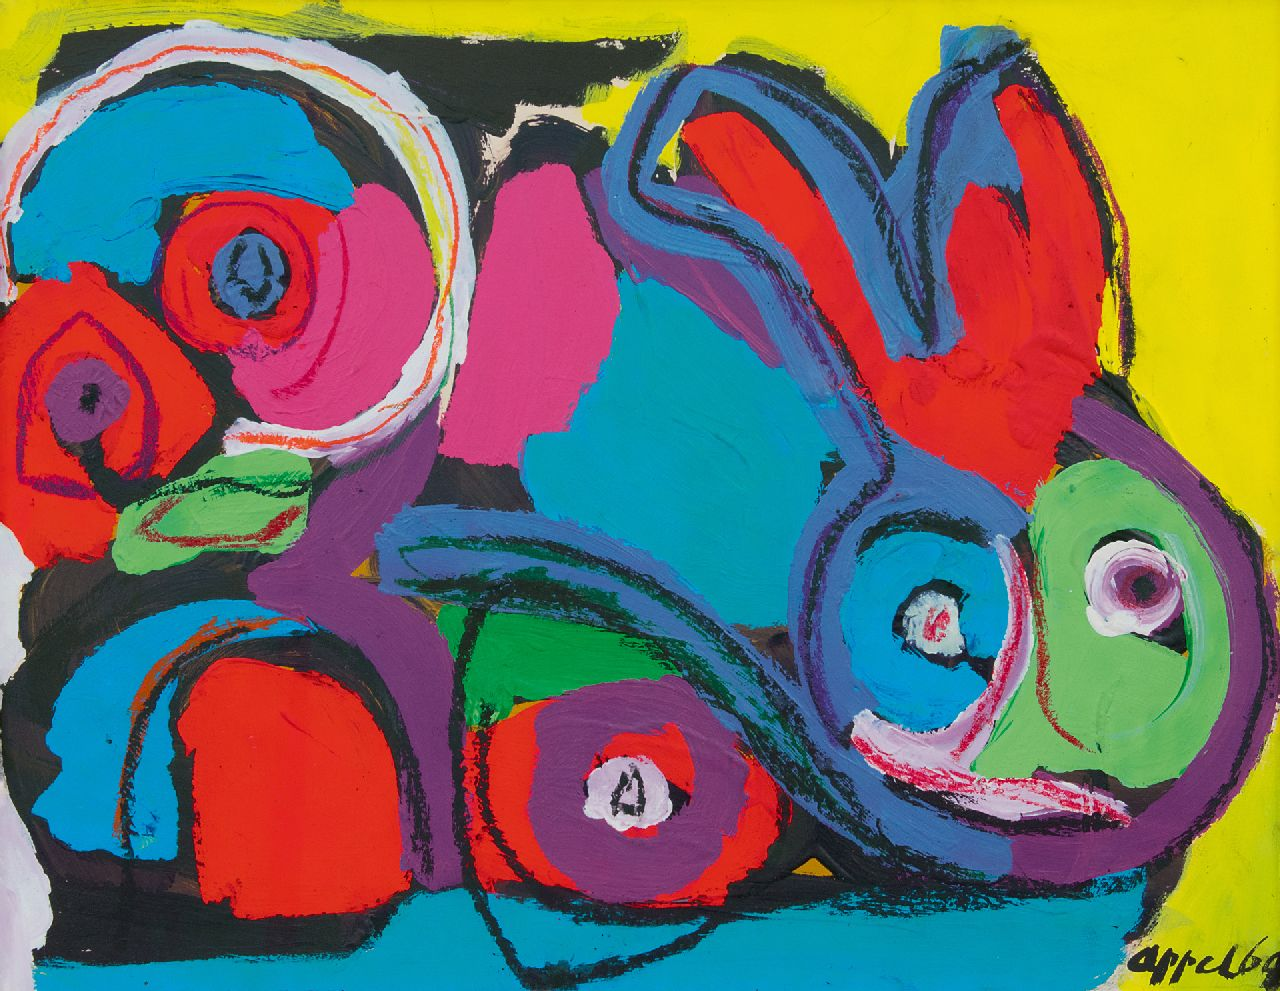 Appel C.K.  | Christiaan 'Karel' Appel | Watercolours and other works on paper offered for sale | Rabbit, chalk and acrylic on paper 50.1 x 64.9 cm, signed l.r. and dated '69